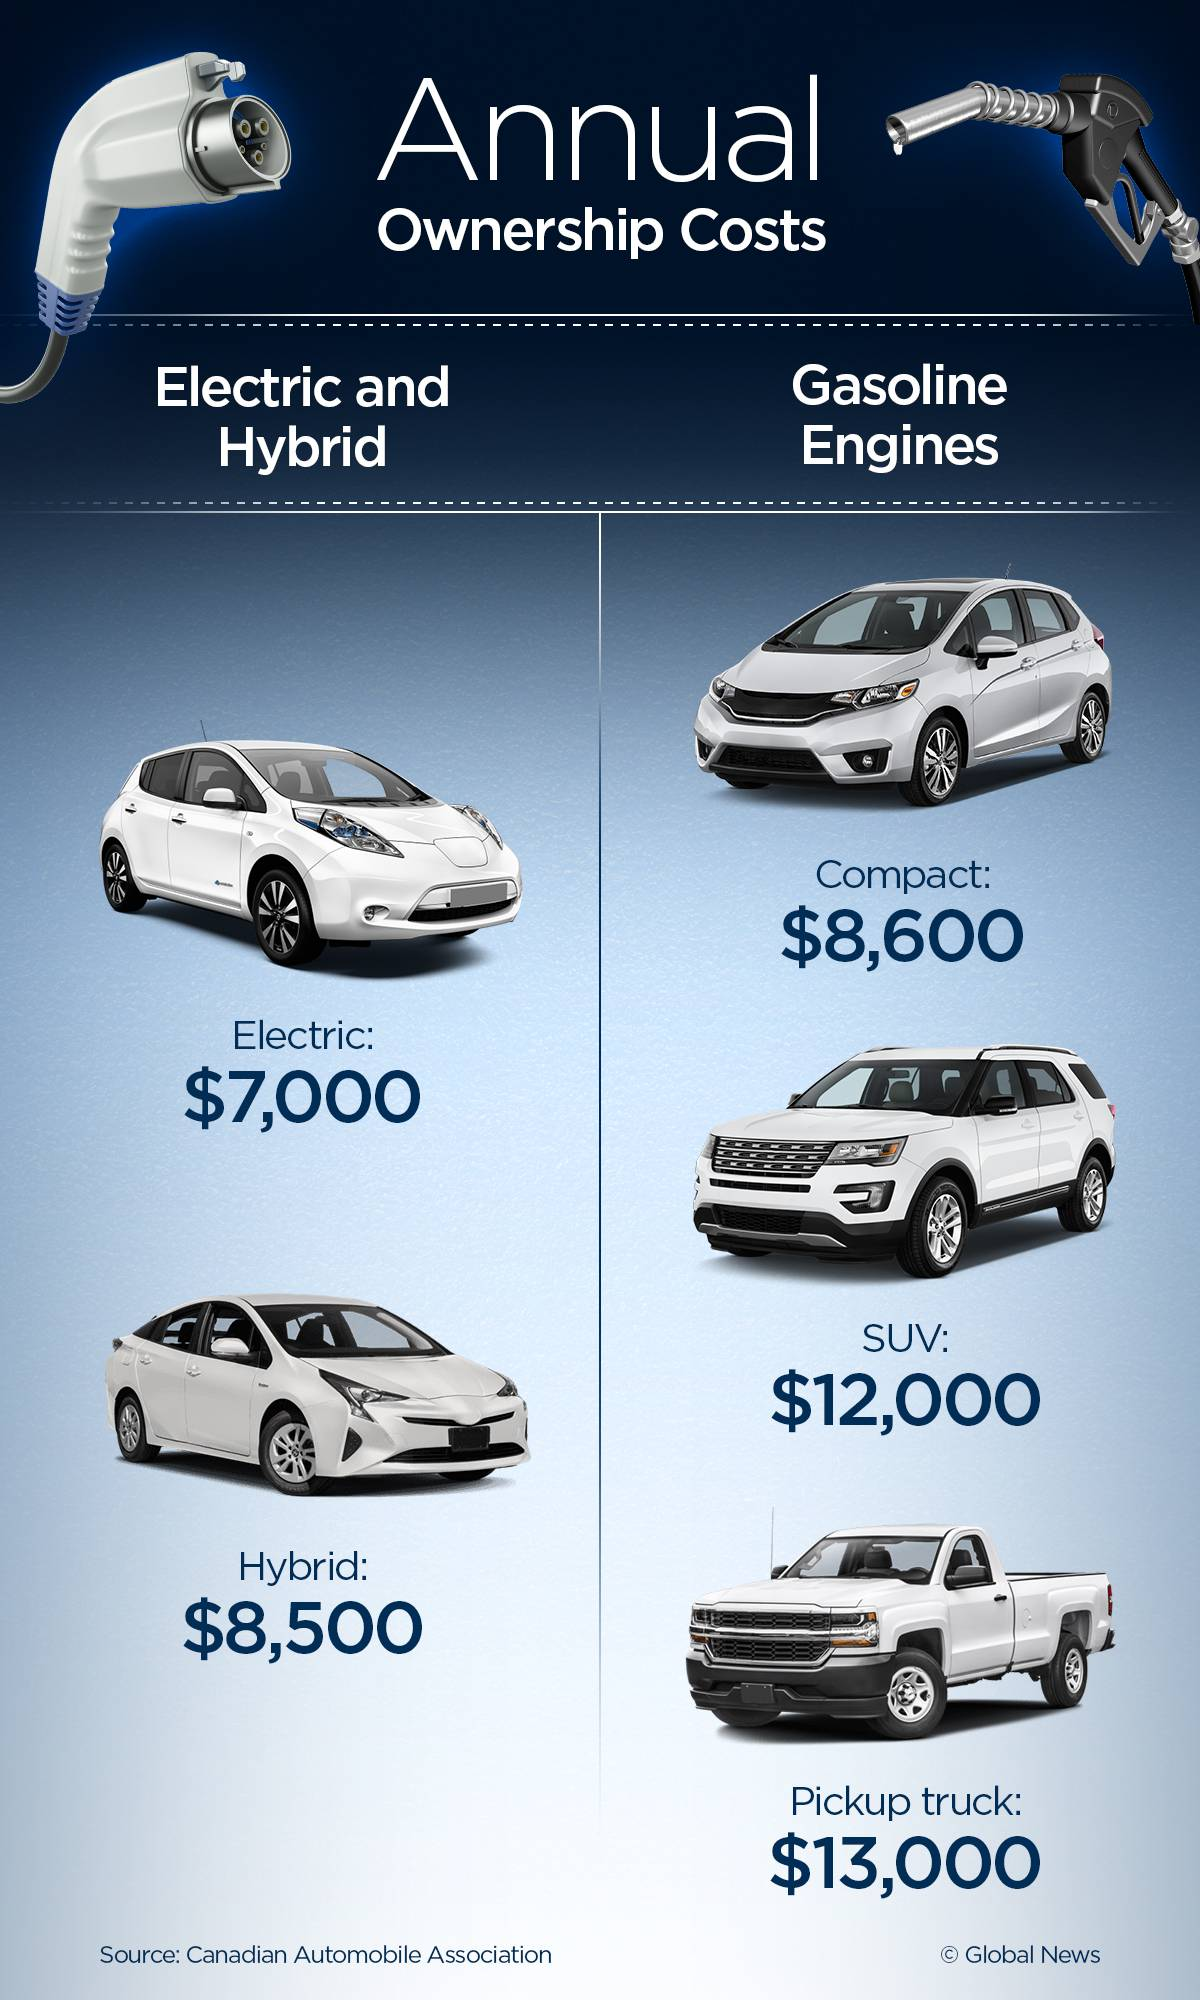 Owning An Electric Or Hybrid Vehicle Could Save You Hundreds Of Dollars A Year In Ownership Costs Including Depreciation According To Numbers Provided By